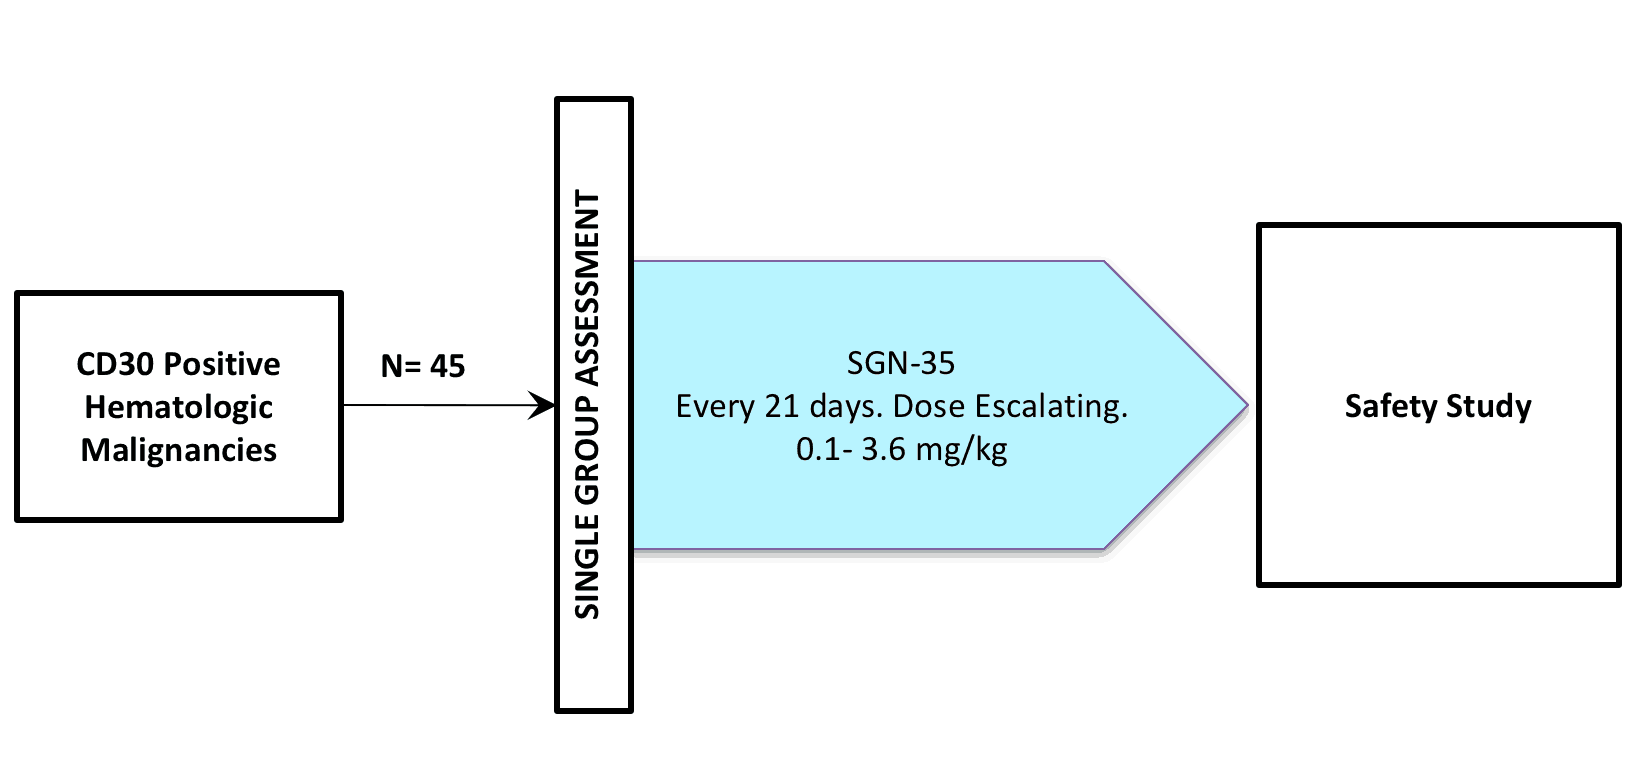 NCT00430846 (CLINICAL TRIAL / BRENTUXIMAB VEDOTIN / SGN-035 / ADCETRIS®)